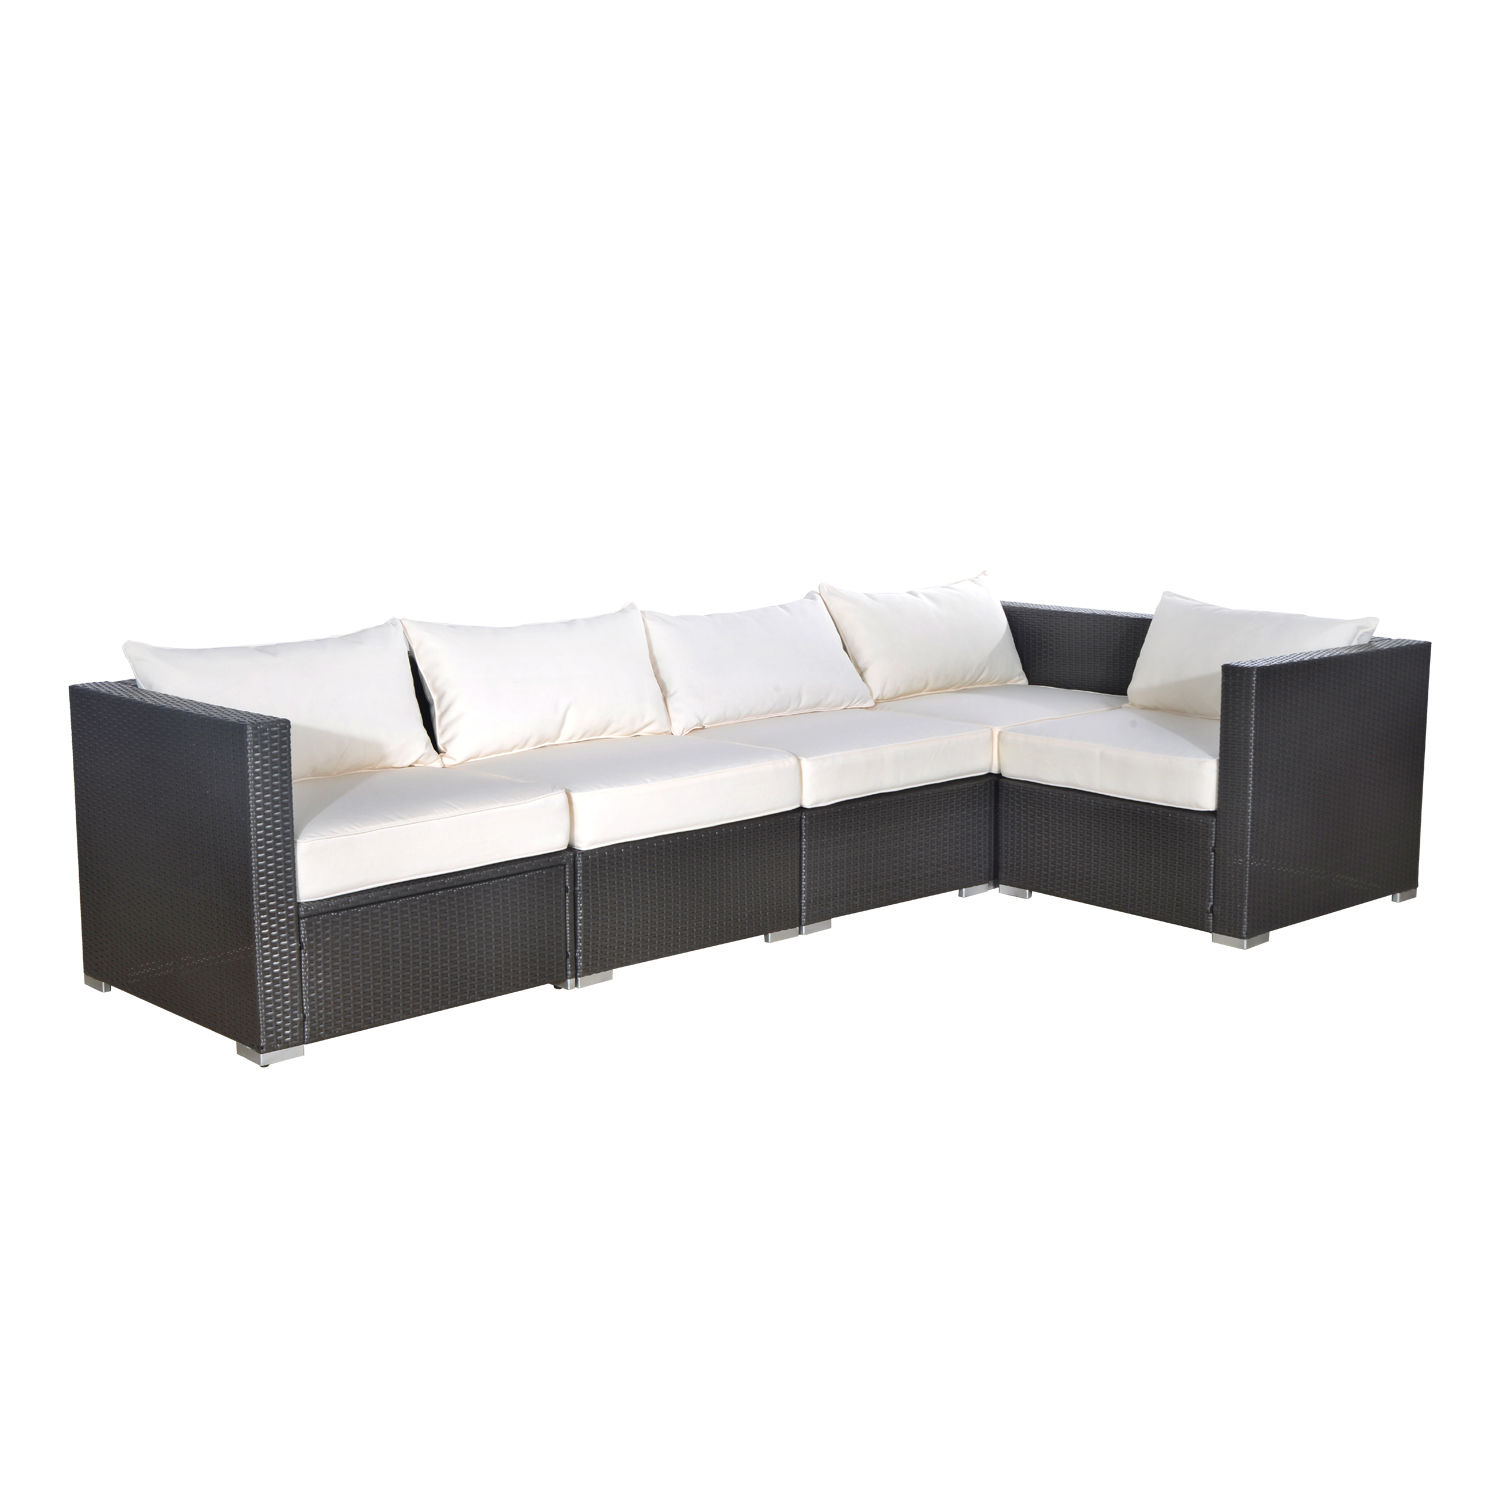 Outsunny 5 Piece Outdoor Rattan Wicker Garden Patio Sofa Sectional